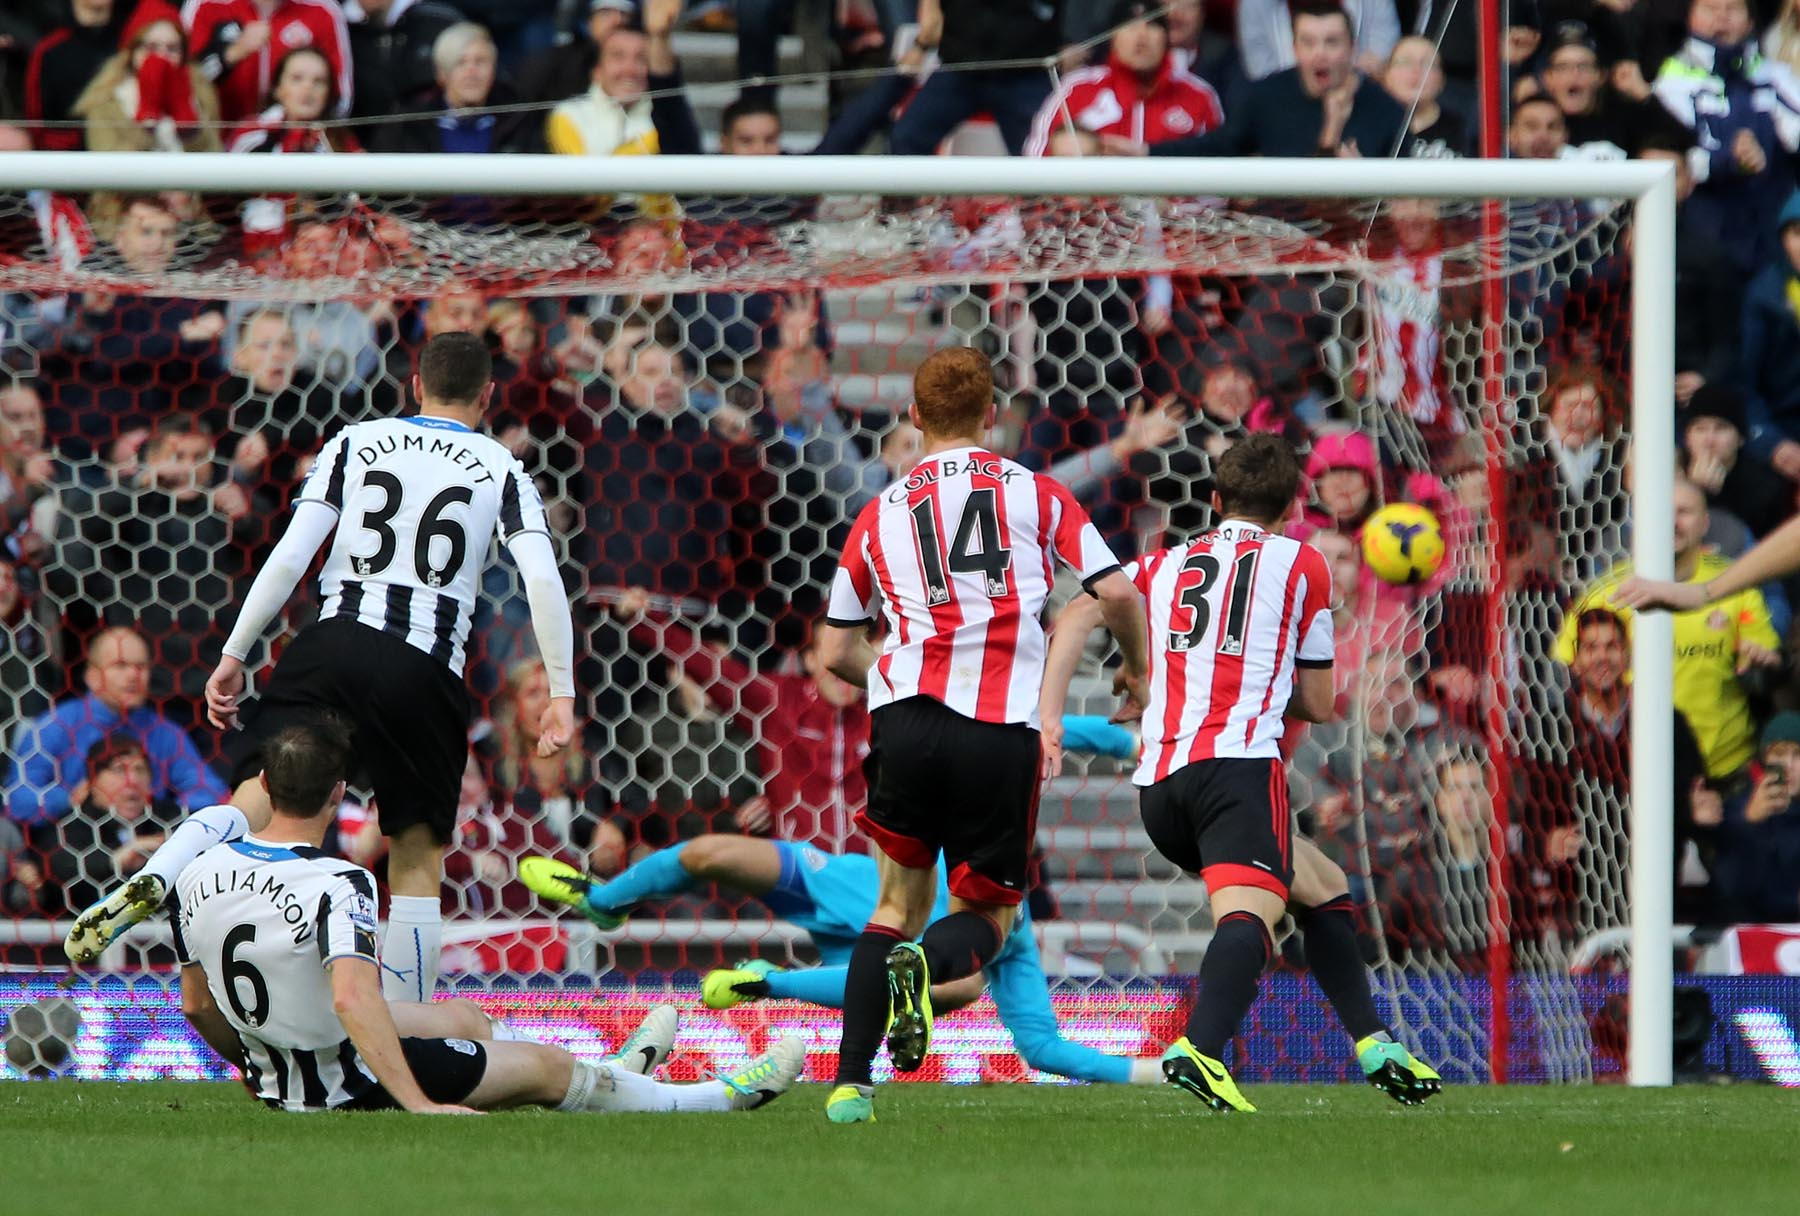 Derby hero: Fabio Borini scored the winner against Newcastle